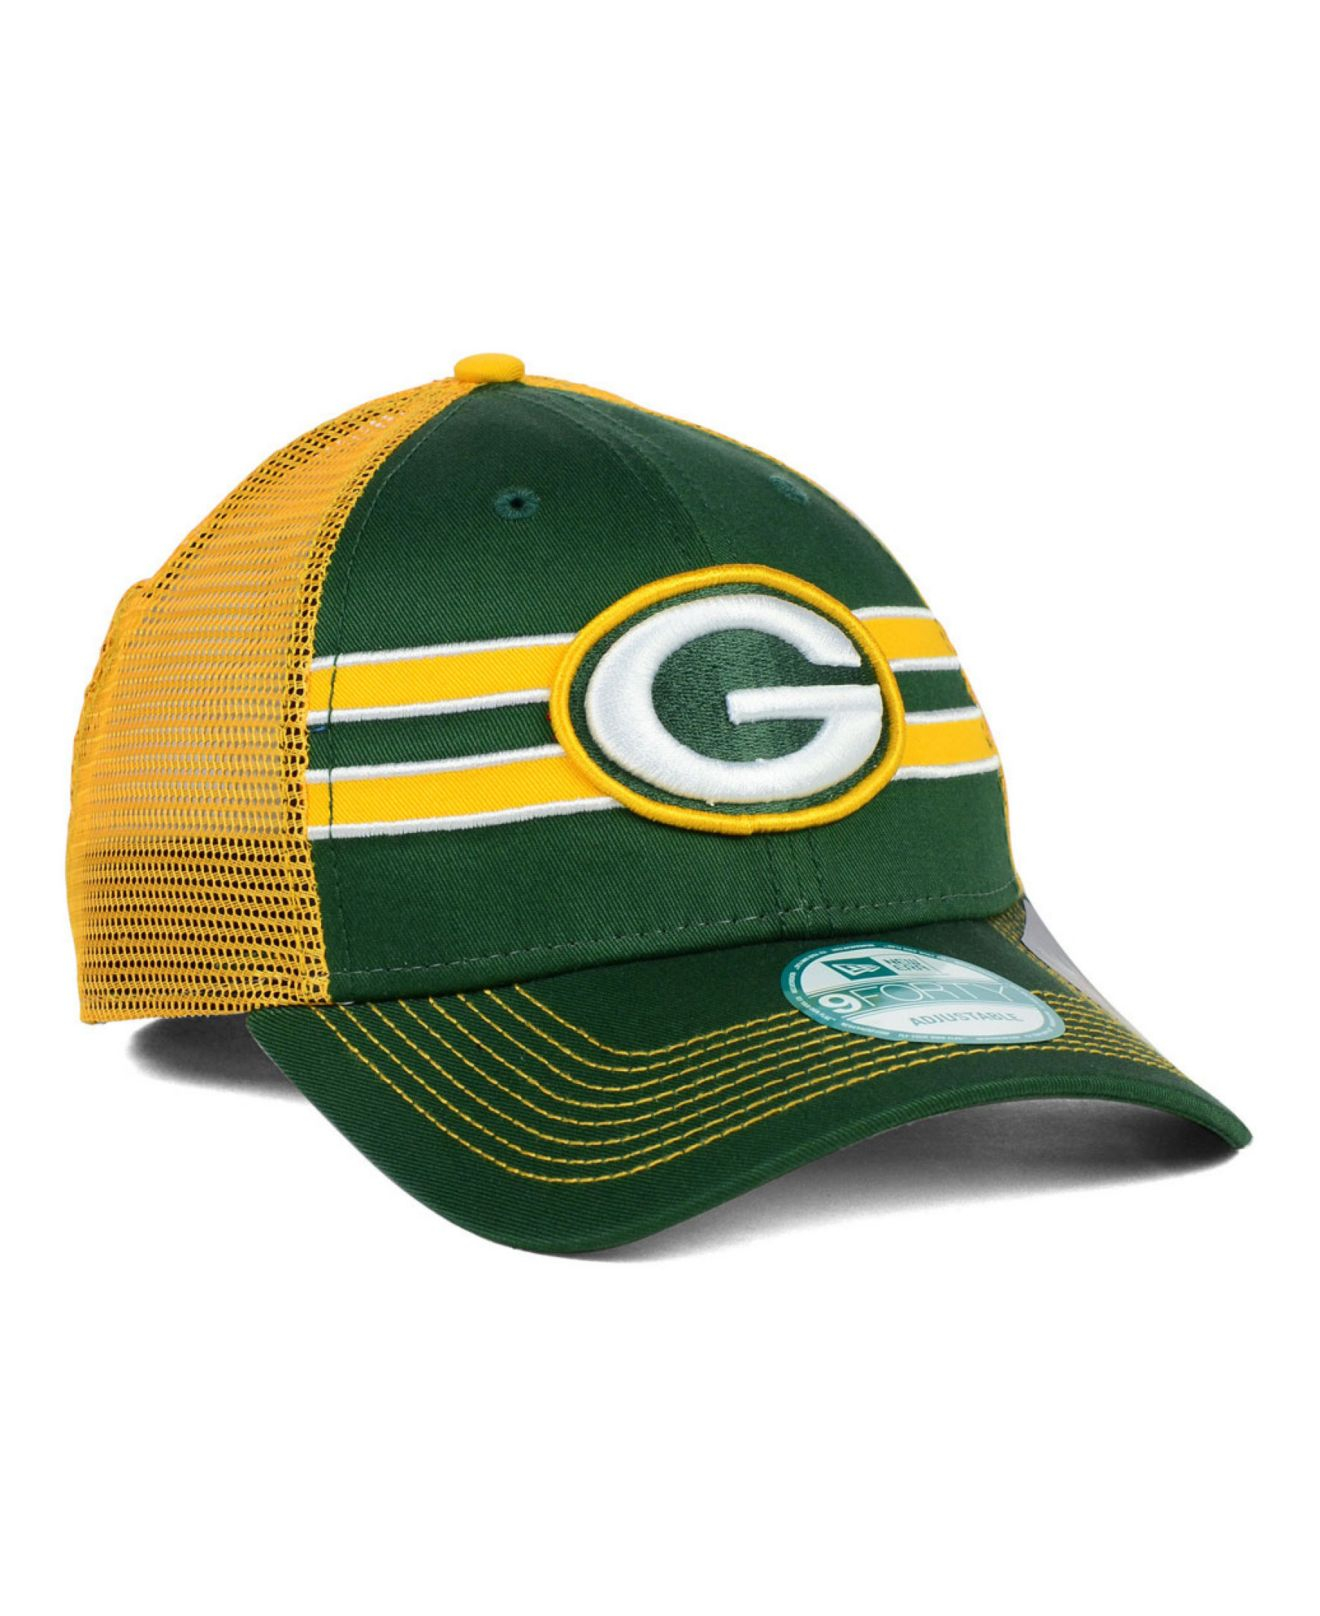 ... Hats Beanies Sideline Caps Snapbacks. Gallery. Lyst Ktz Green Bay  Packers Frontband Trucker 9forty Cap In Yellow. New Era ... 238ea899a423